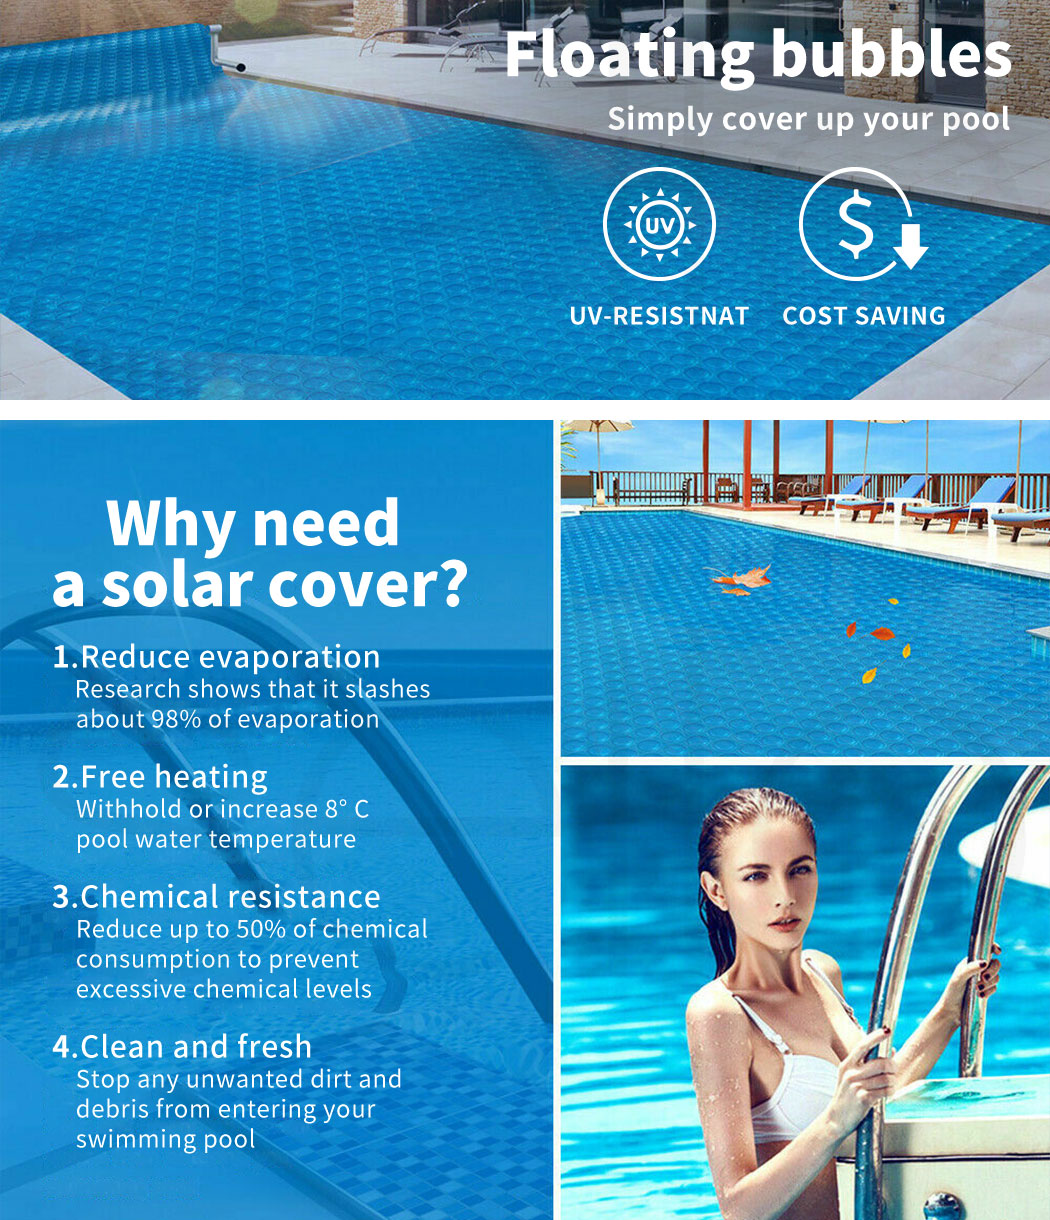 Solar-Swimming-Pool-Cover-400-500-Micron-Outdoor-Bubble-Blanket-Covers-7-Sizes thumbnail 140